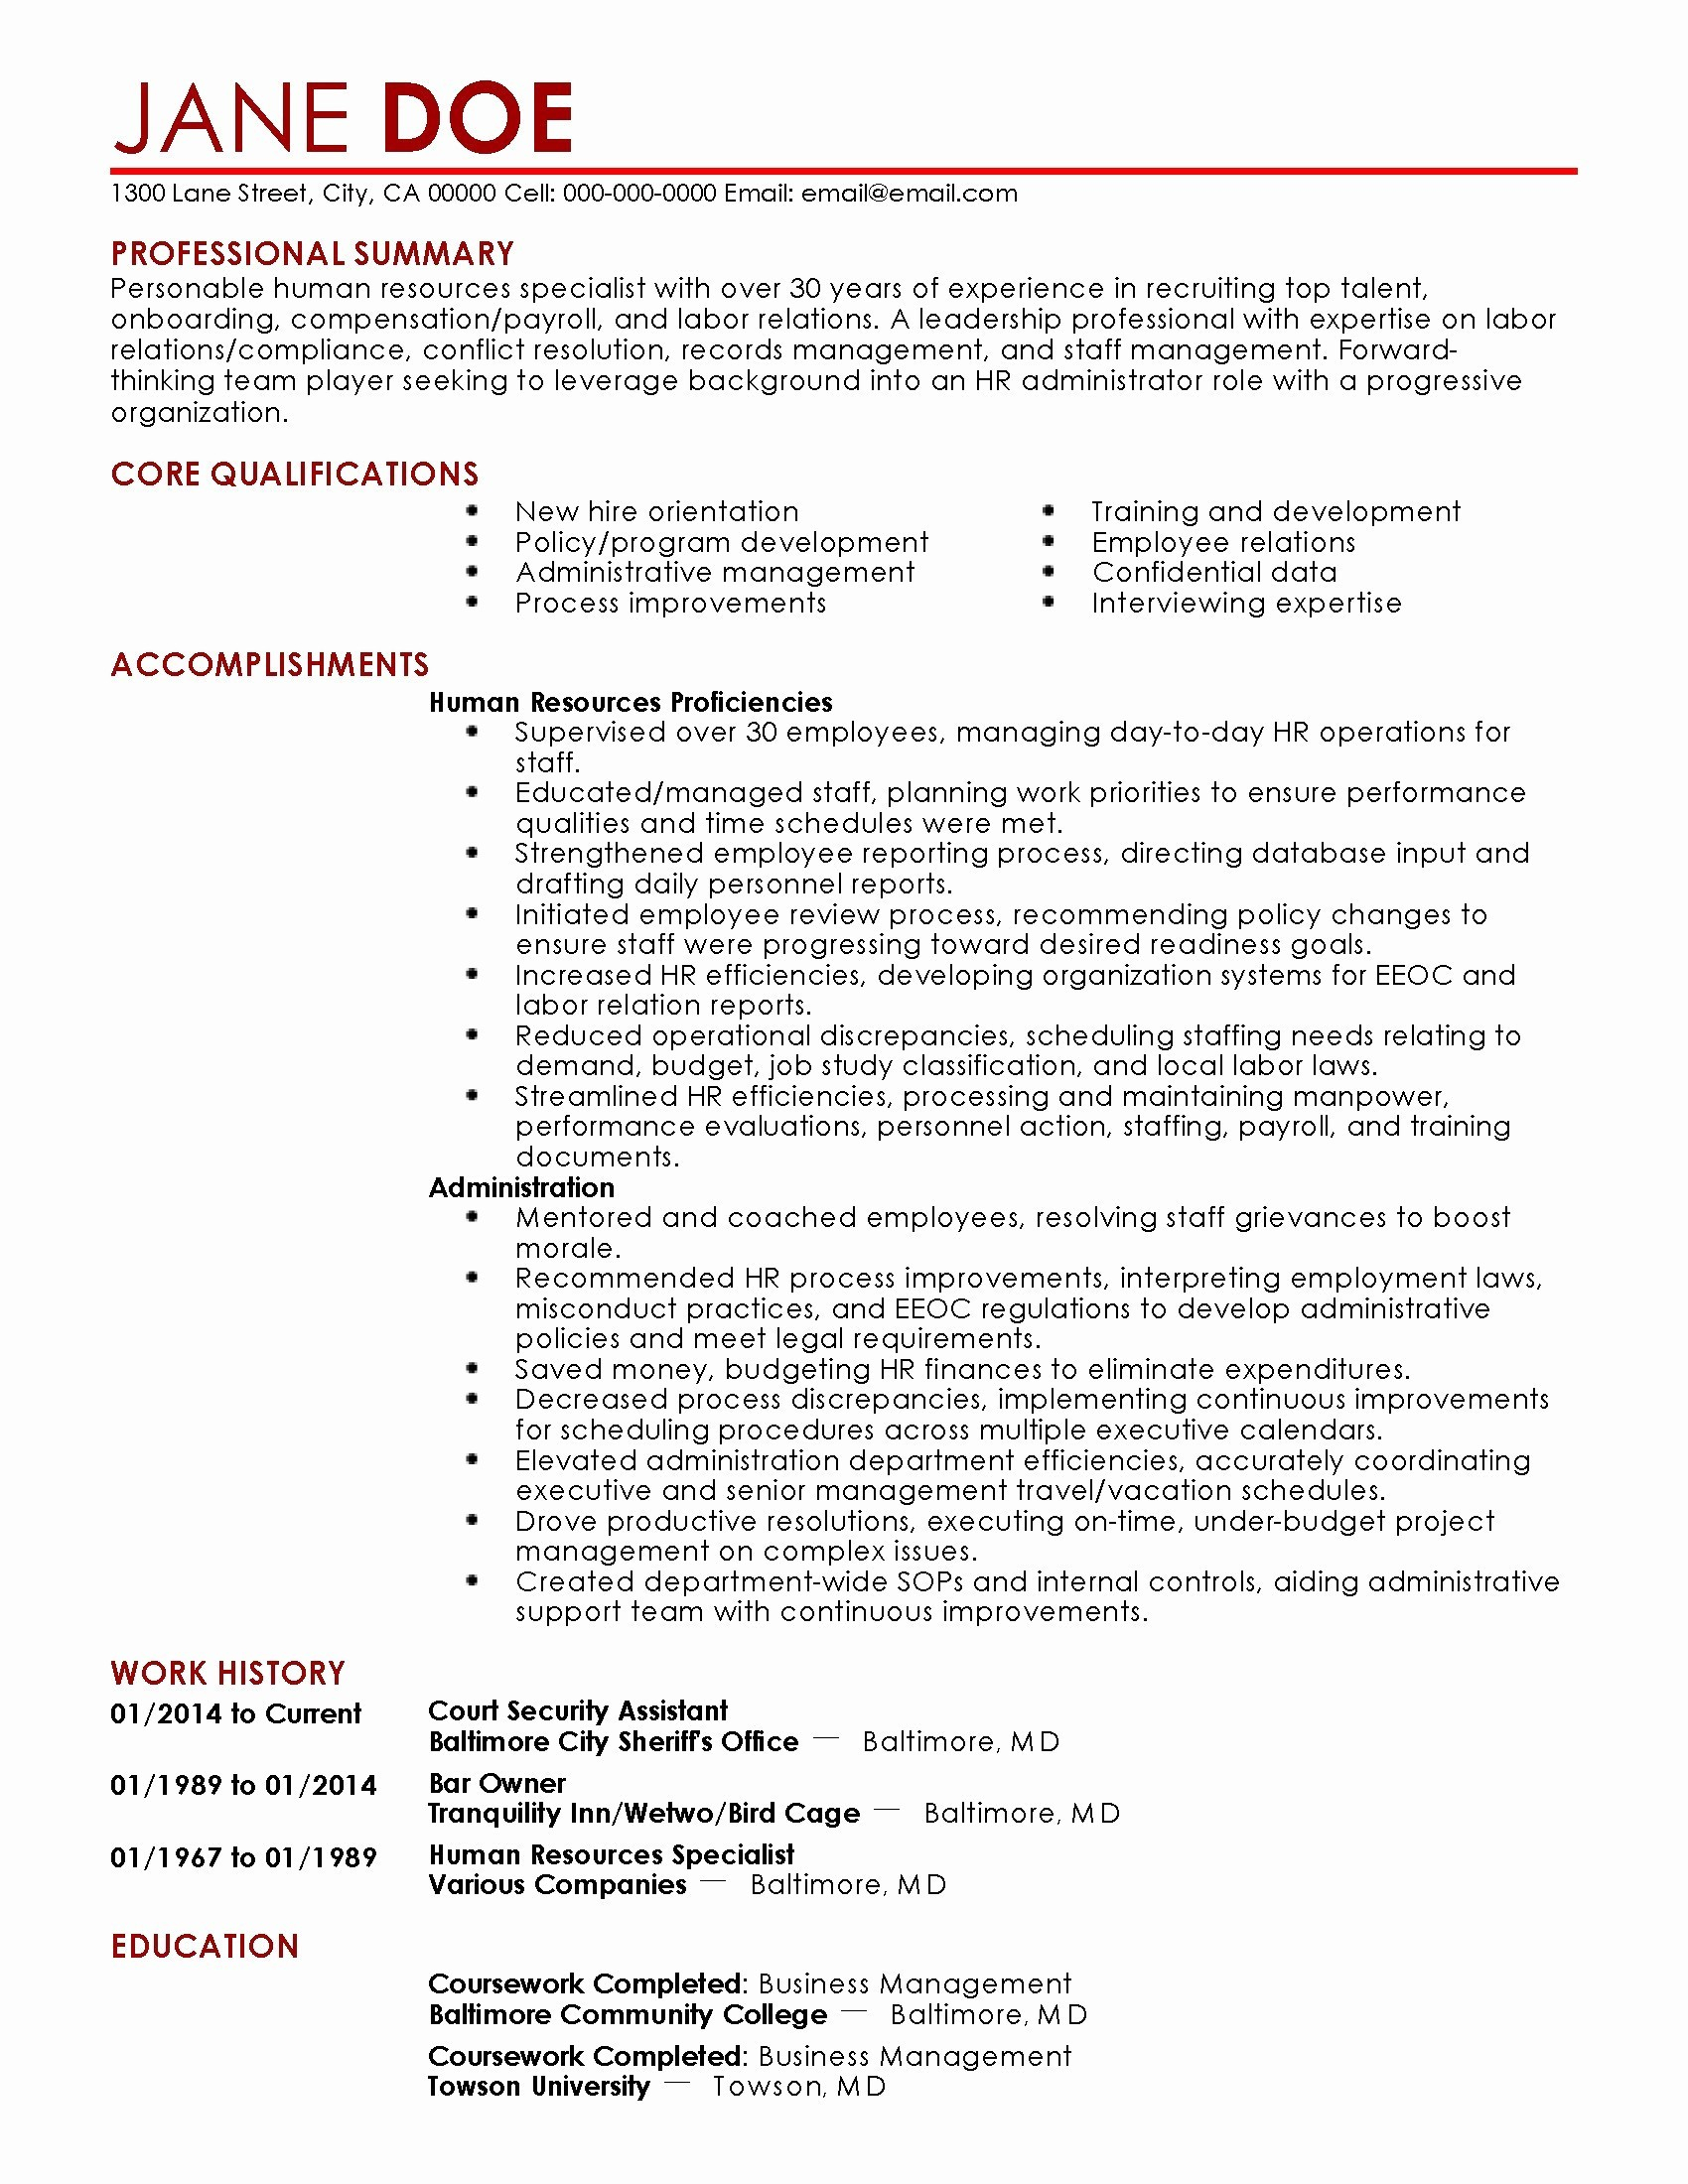 medical assistant resume template Collection-Medical assistant resume template lovely medical assistant resumes new medical resumes 0d bizmancan 12-t